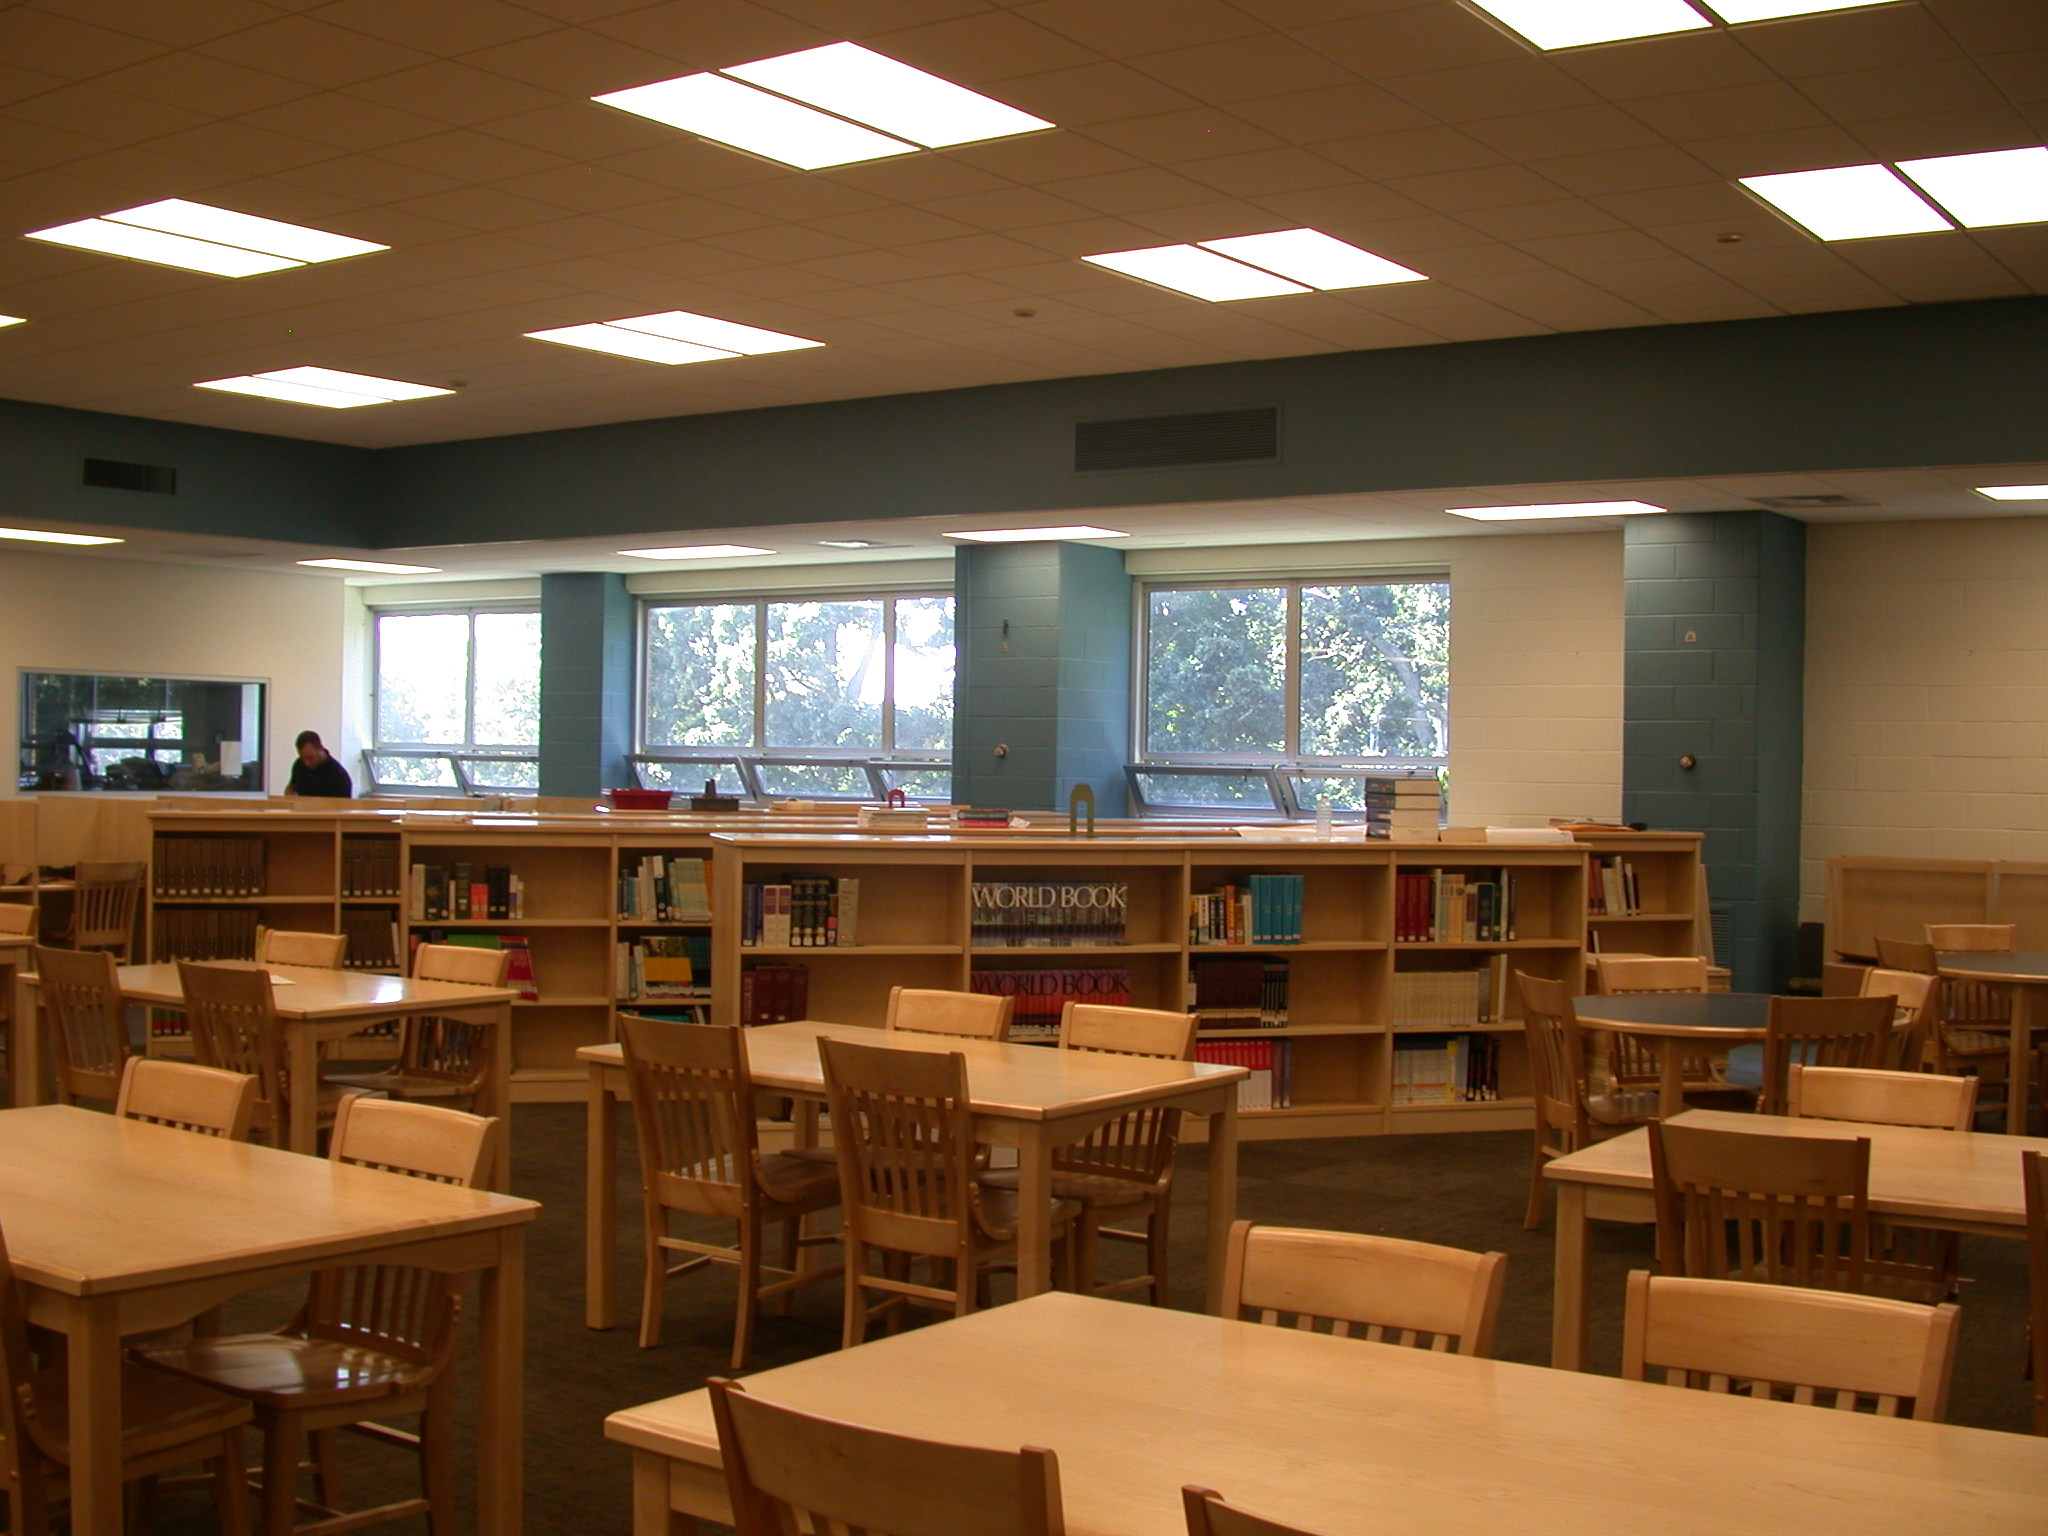 School Library Furniture. Longo Schools   Blog Archive   School Library Furniture